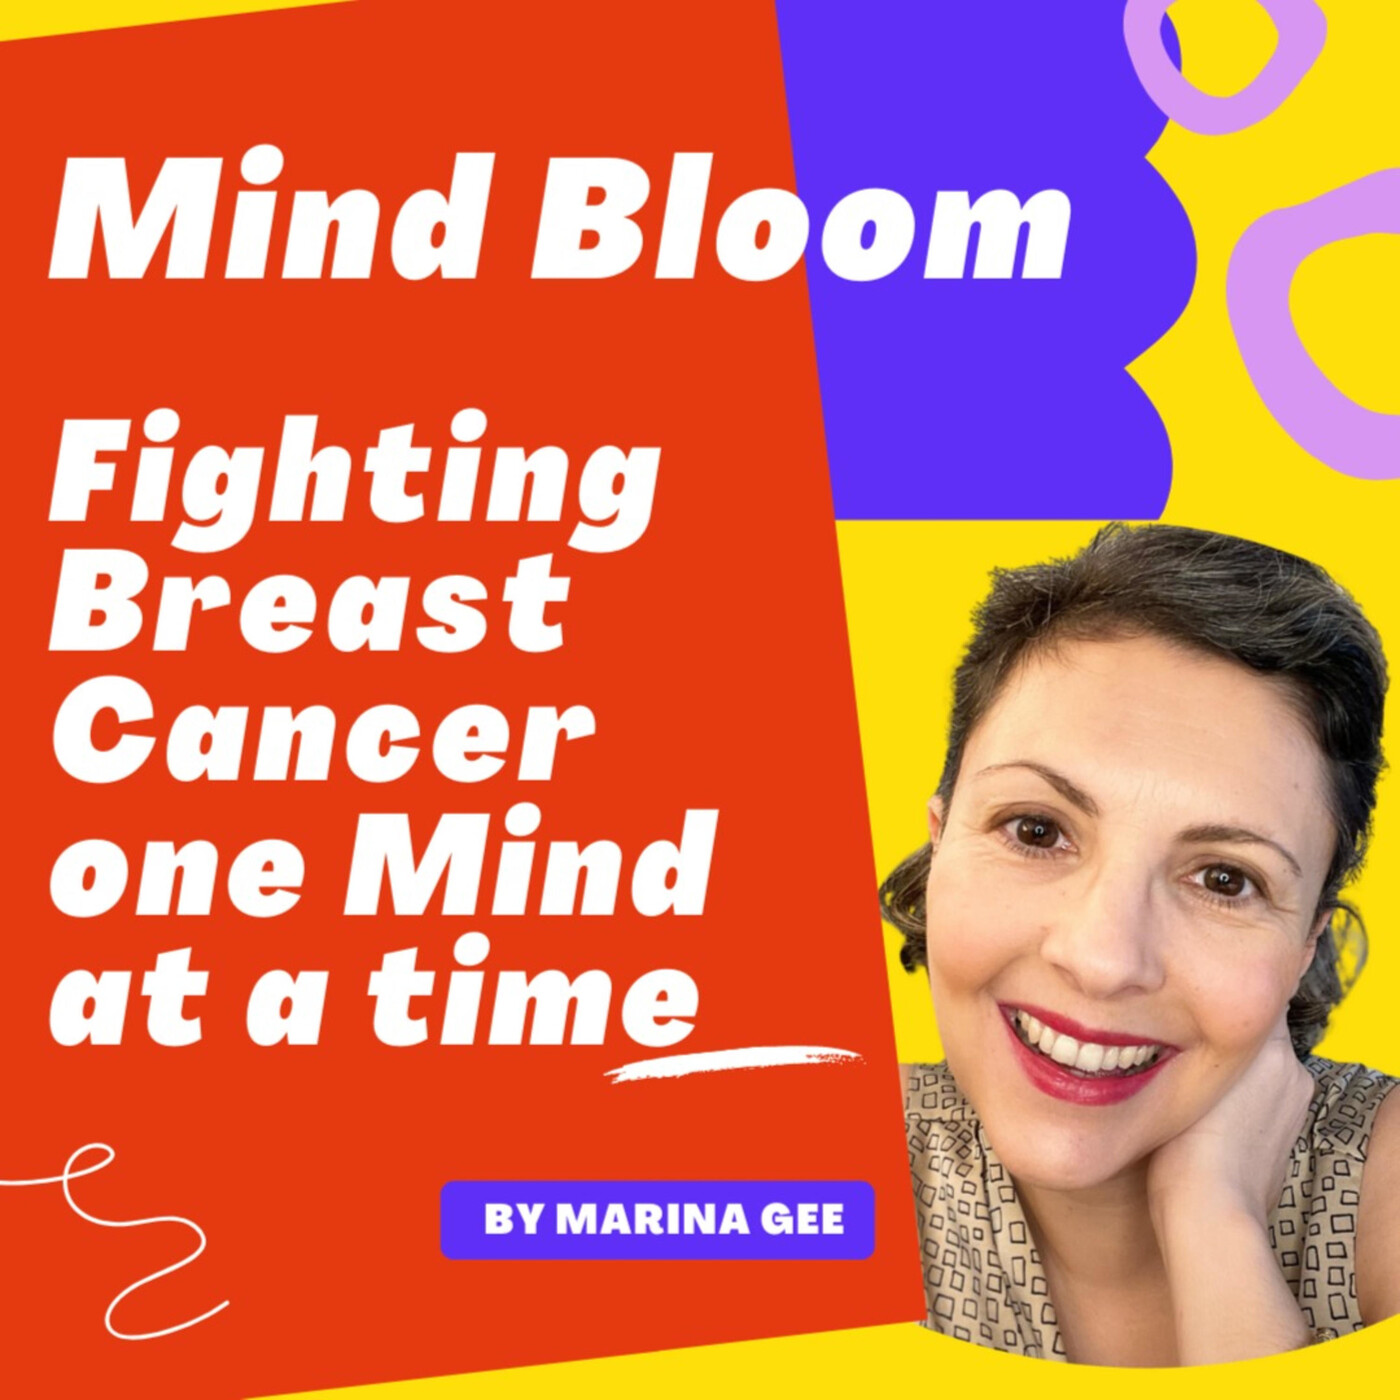 Ep. 21: The Badass Queen and Chad, the Cancer, with Kate Burns